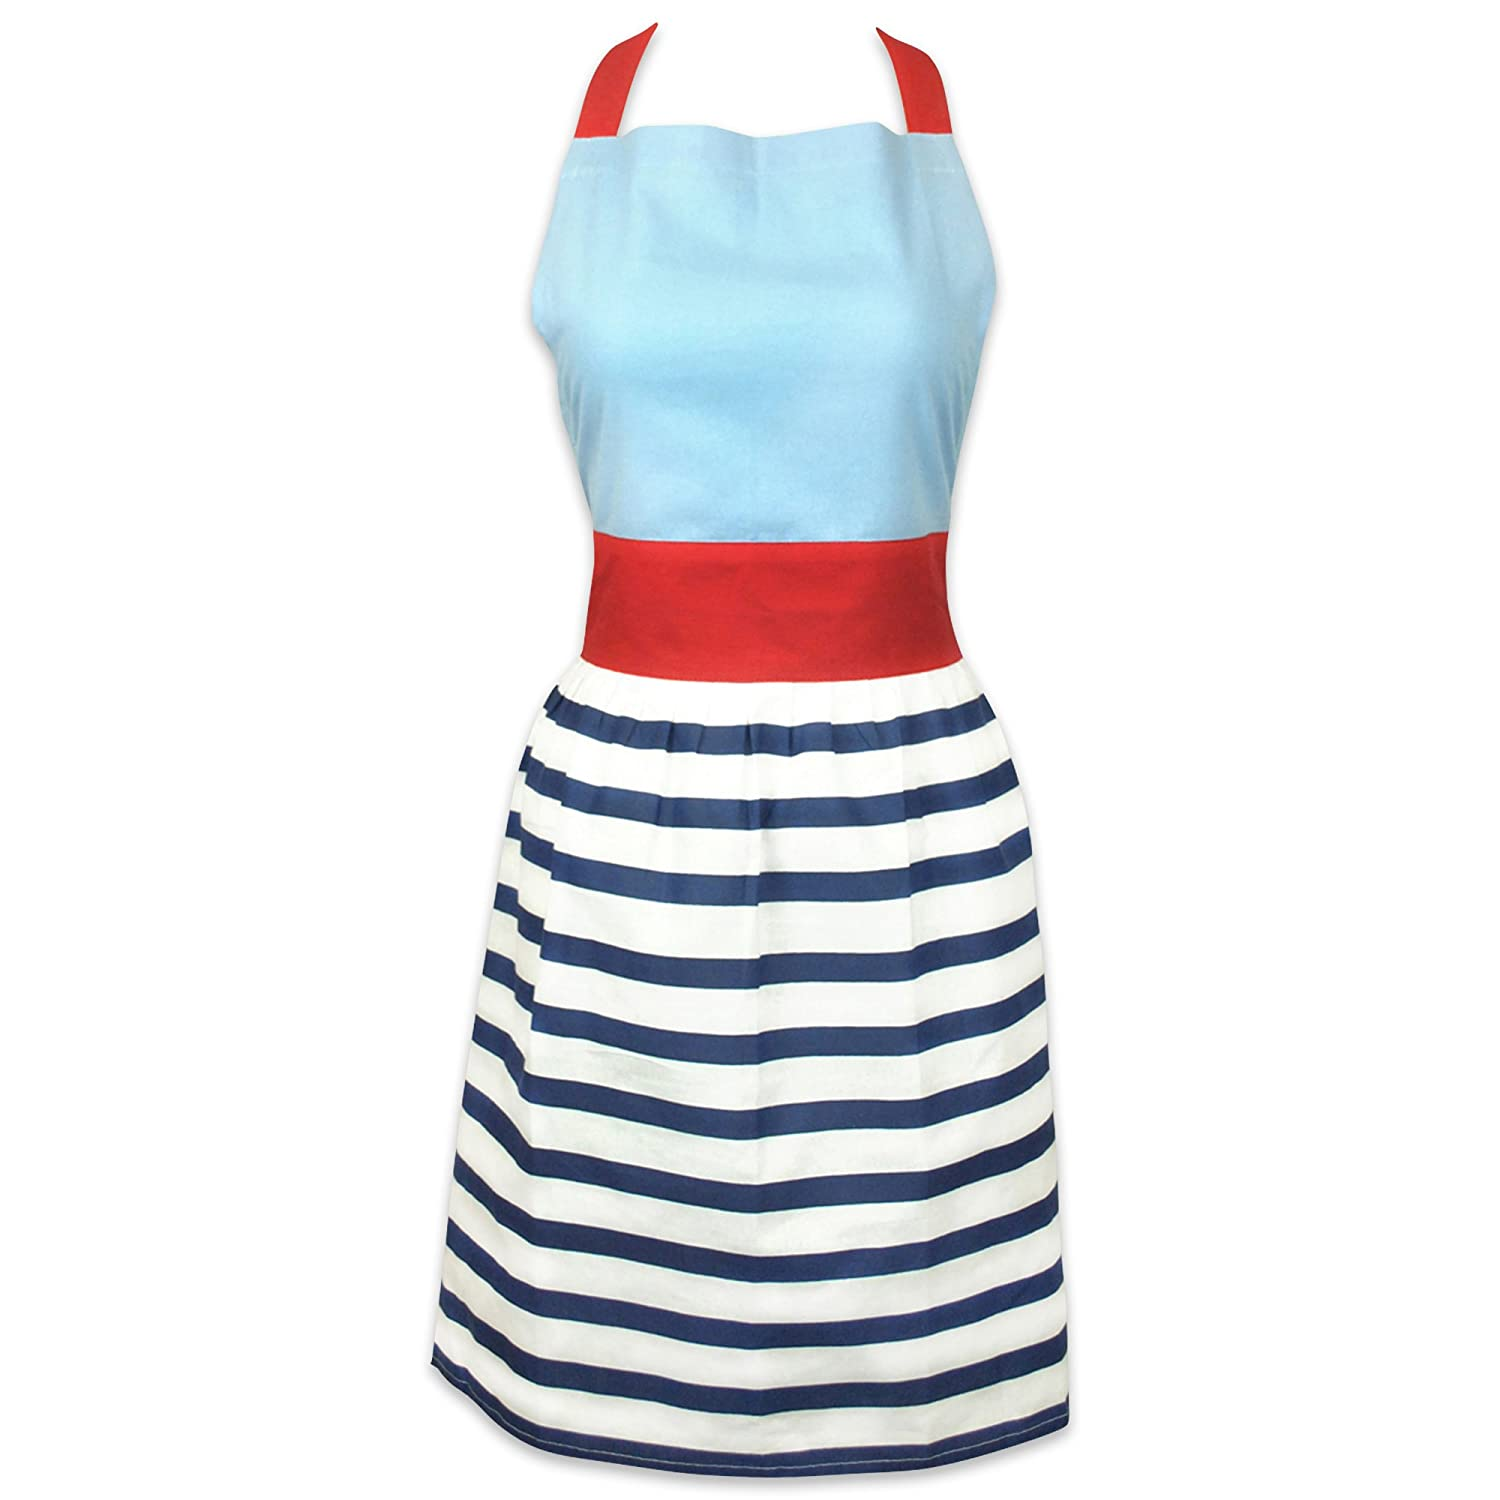 DII 100% Cotton, Fashion Kitchen Women Apron, Skirt Dress Design, Extra-Long Neck & Waist Ties, Embroidery Area available, Perfect for Cooking, Baking, Crafting-Chevron CAMZ34833